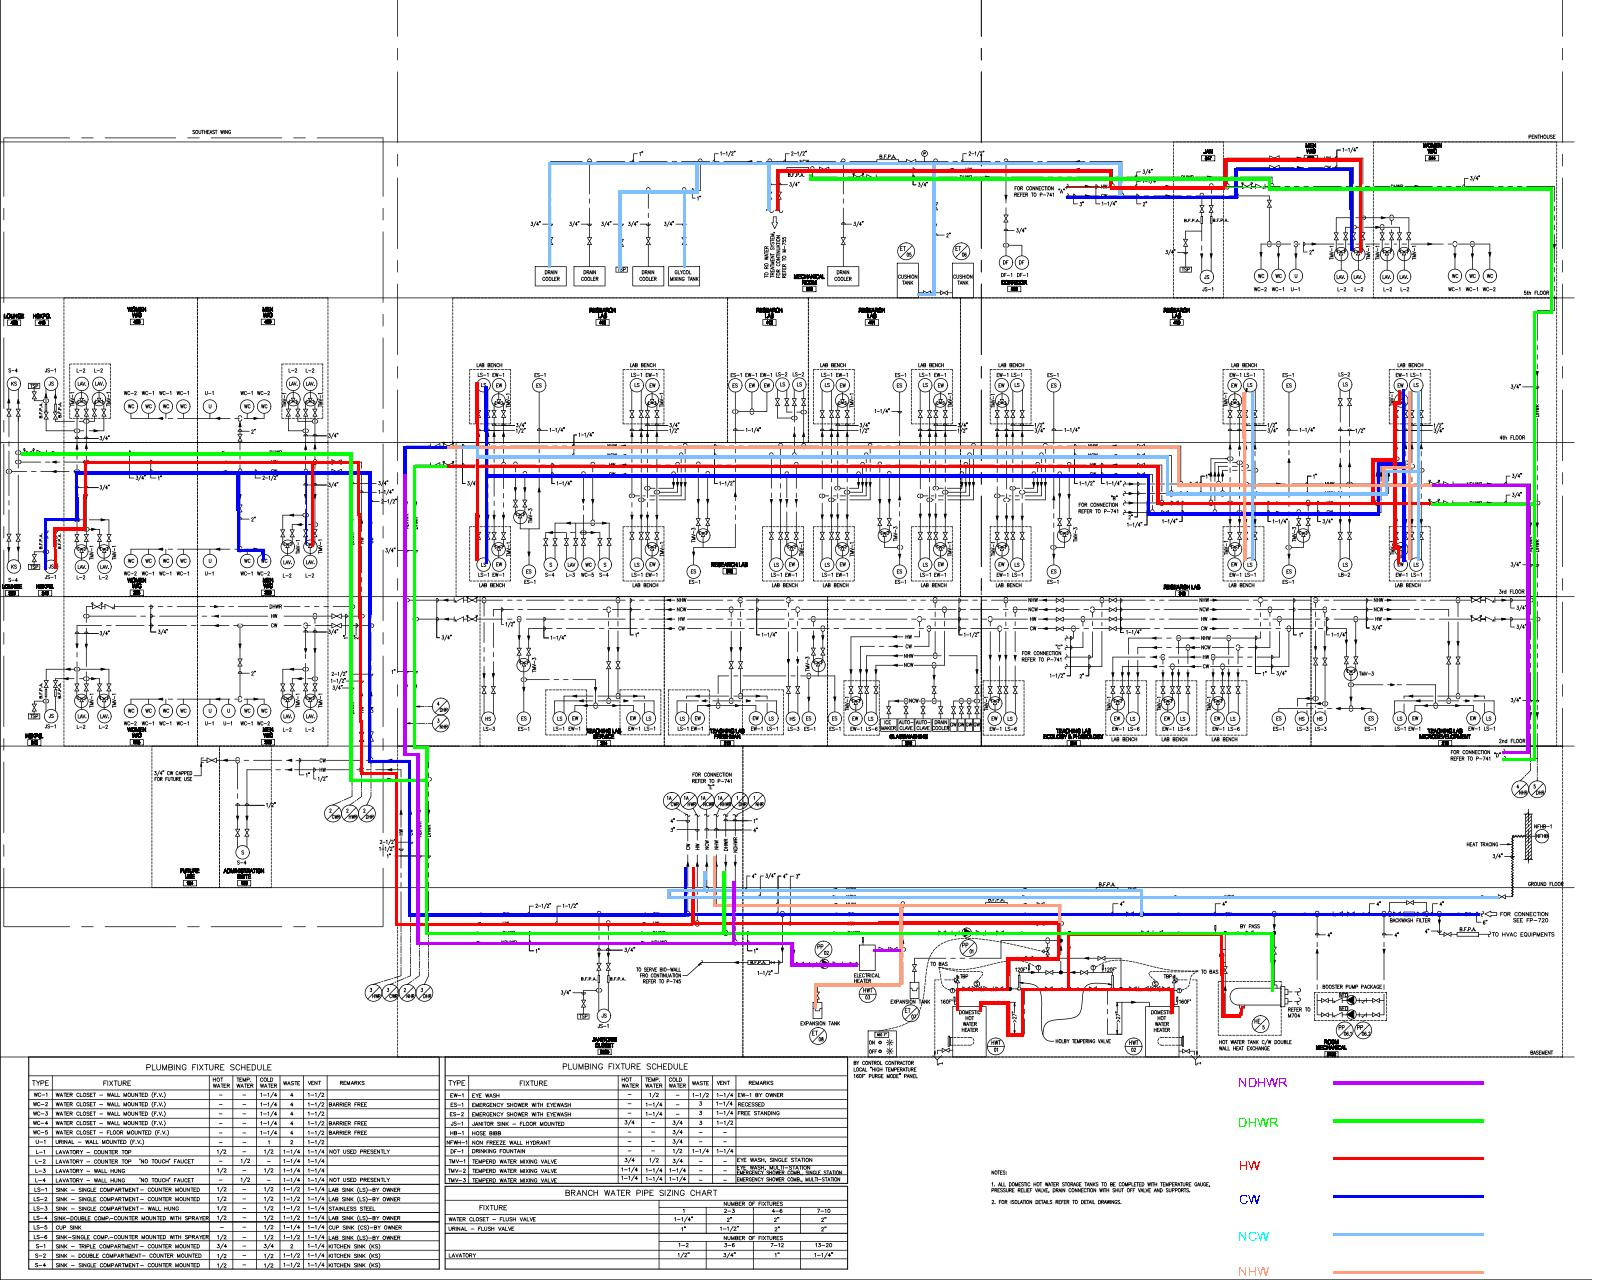 hight resolution of plumbing constantine papadakis integrated sciences building rh cpisb wordpress com hot water heat piping diagrams feed water boiler piping diagrams